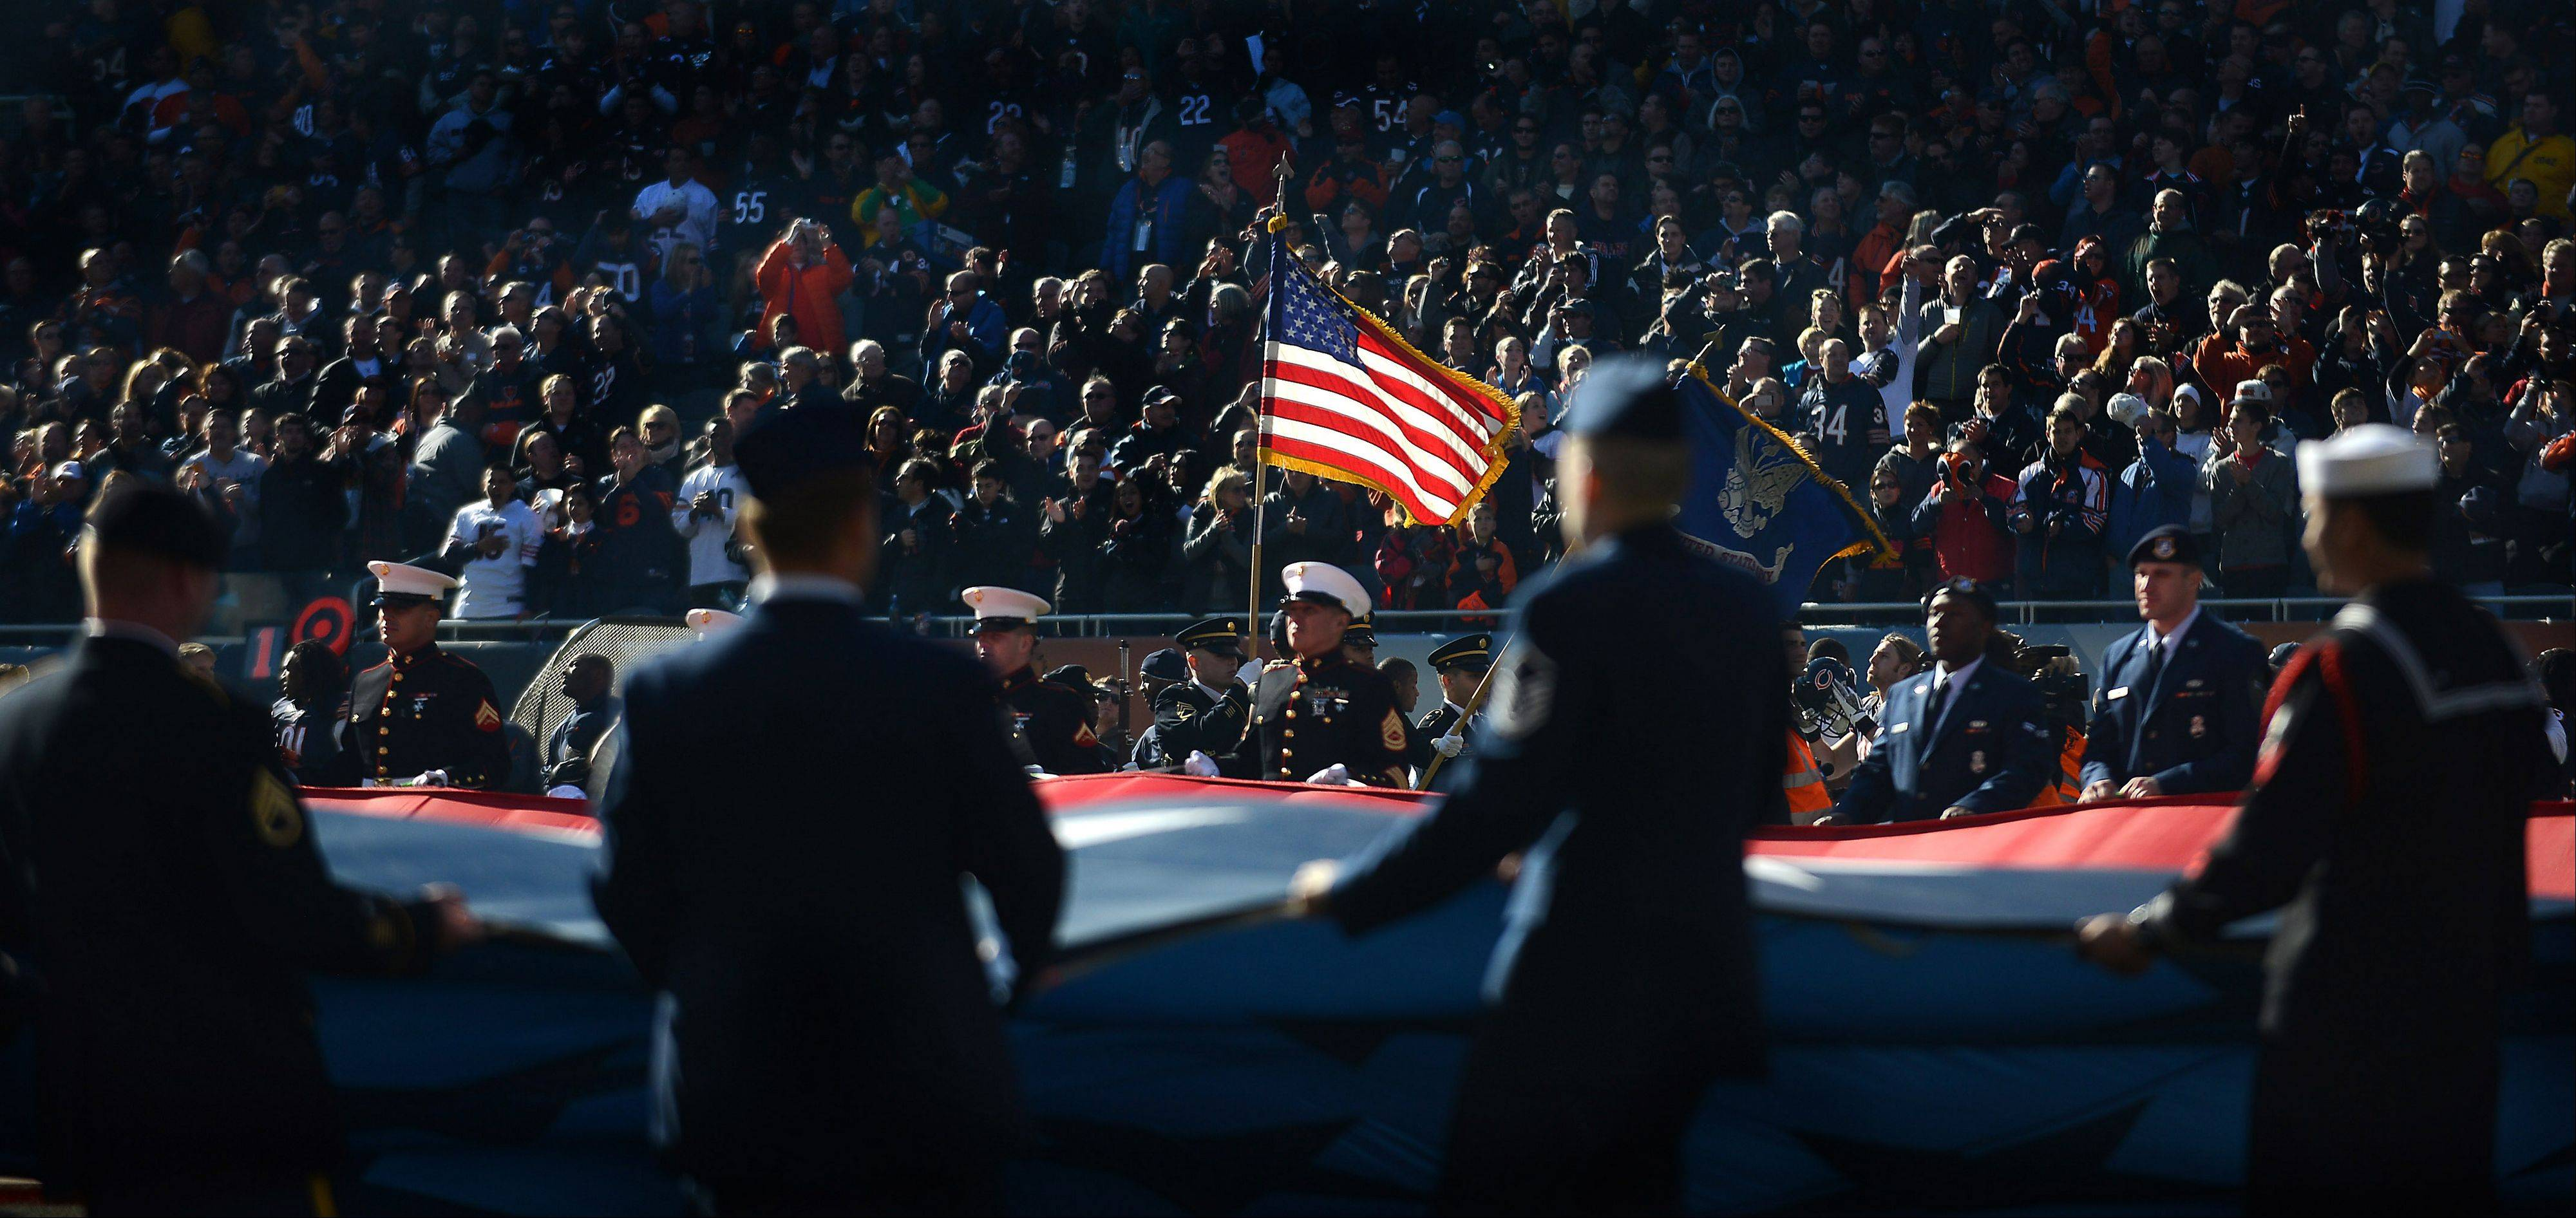 The Bears game against the Lions was held the day before Veterans Day and I had seen the huge American flag they were bringing out in the tunnel earlier. Fortunately the sun was coming in at a severe angle that put much of the stands in shadow, partly silhouetted the servicemen and women in front of me and highlighted a flag being held by the color guard. This photo was published in the weekly Perspective column in the print edition.